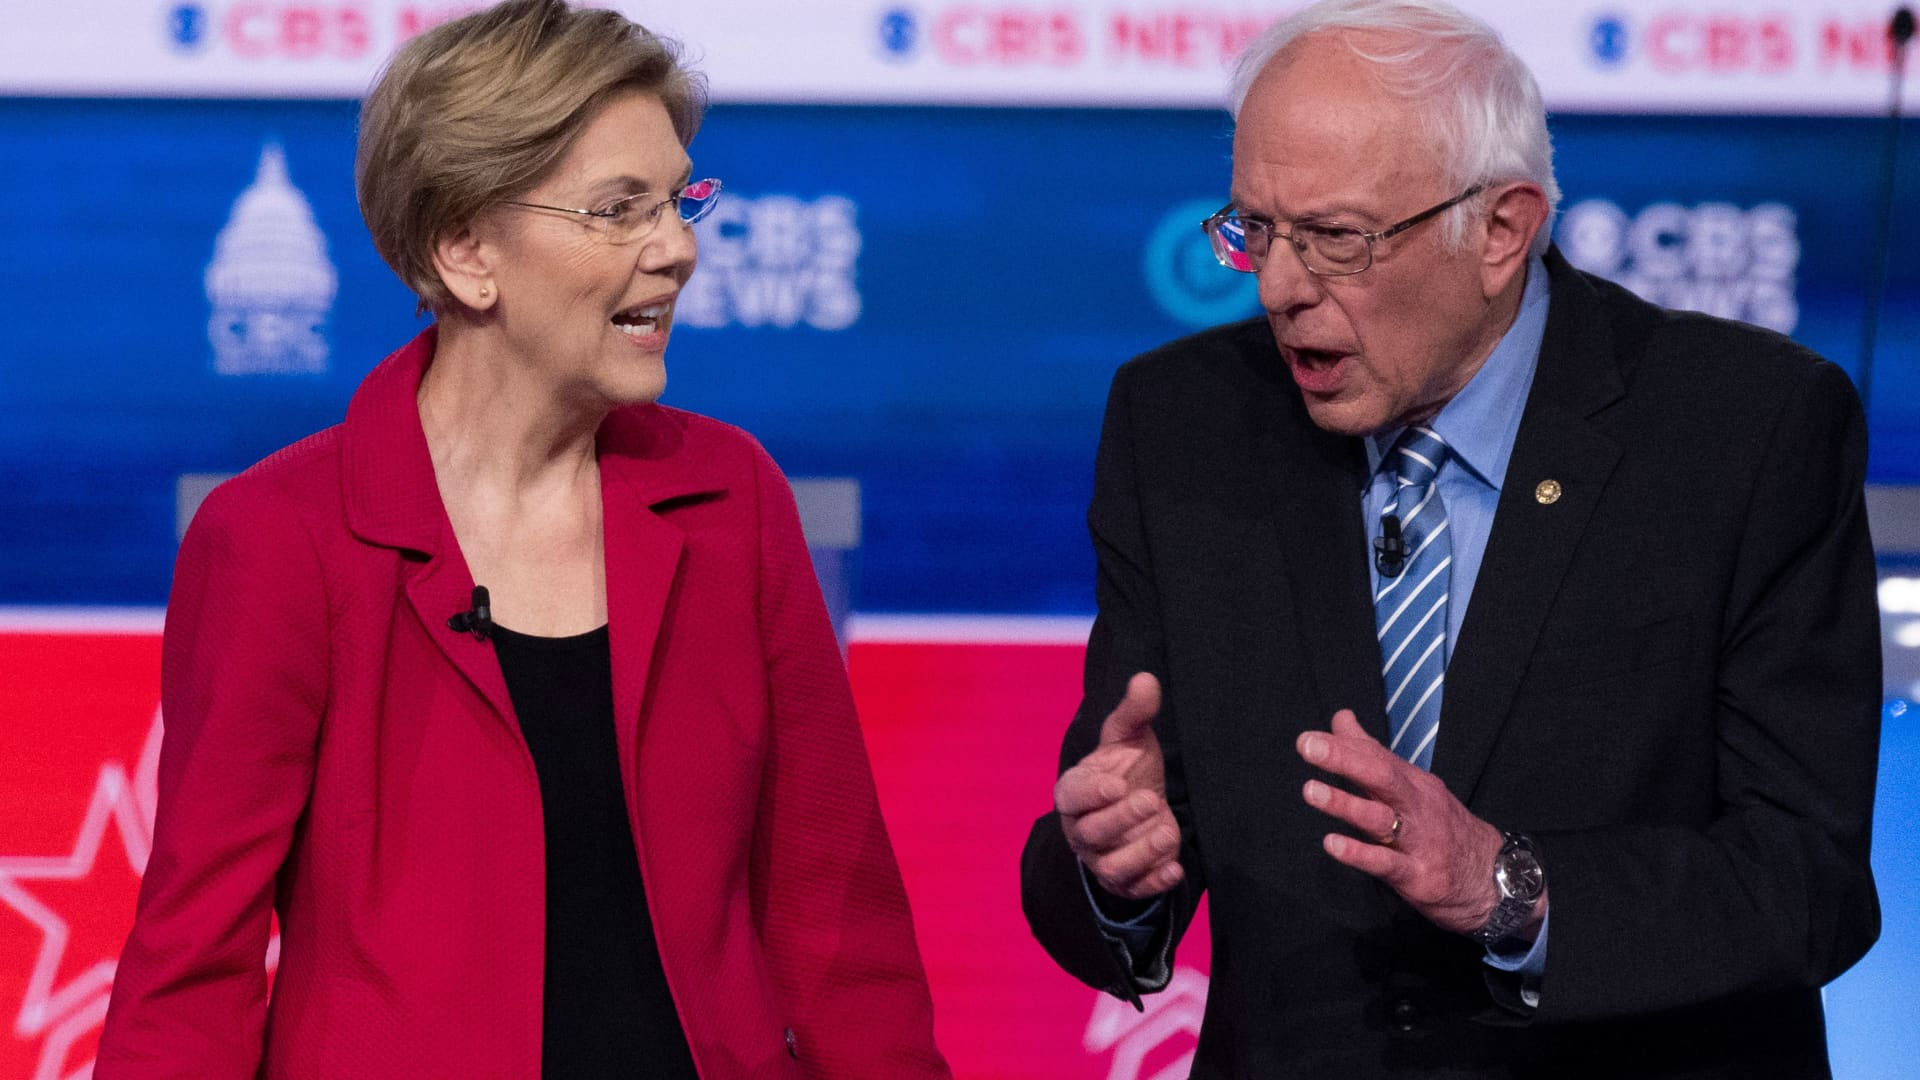 Democratic presidential hopefuls Massachusetts Senator Elizabeth Warren and Vermont Senator Bernie Sanders (R) chat ahead of the tenth Democratic primary debate of the 2020 presidential campaign season co-hosted by CBS News and the Congressional Black Caucus Institute at the Gaillard Center in Charleston, South Carolina, on February 25, 2020.